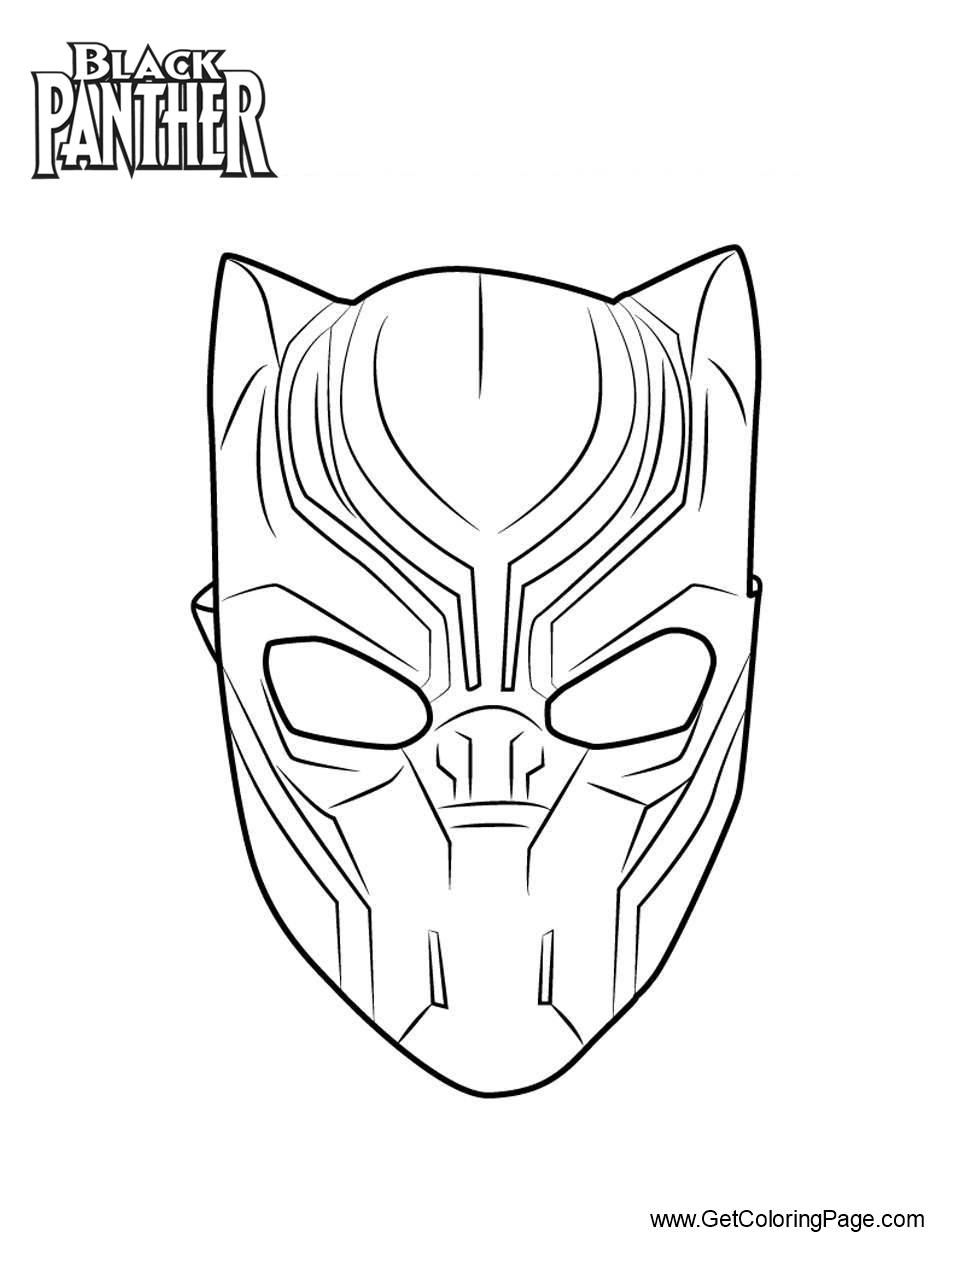 Animals Coloring Pages Free Printable Coloring Pages At Coloringonly Com In 2020 Black Panther Drawing Black Panther Face Avengers Coloring